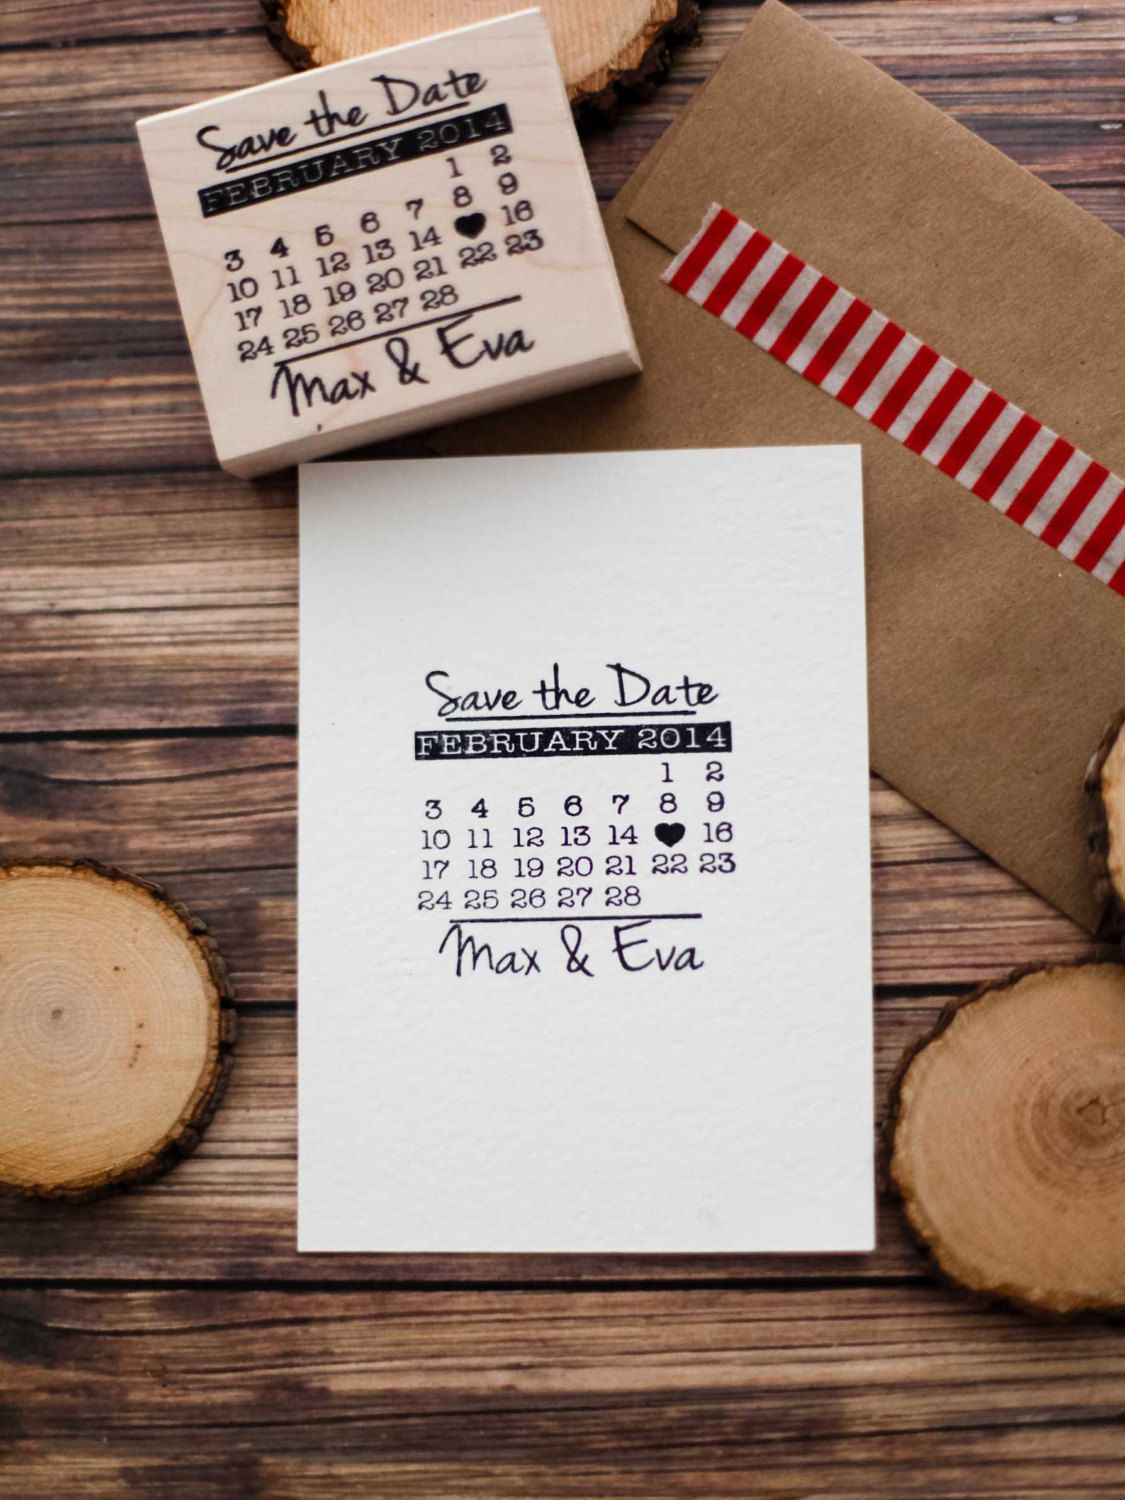 Customized Save The Date Calendar Wedding Invitation Rubber Stamp 2500 Via Etsy